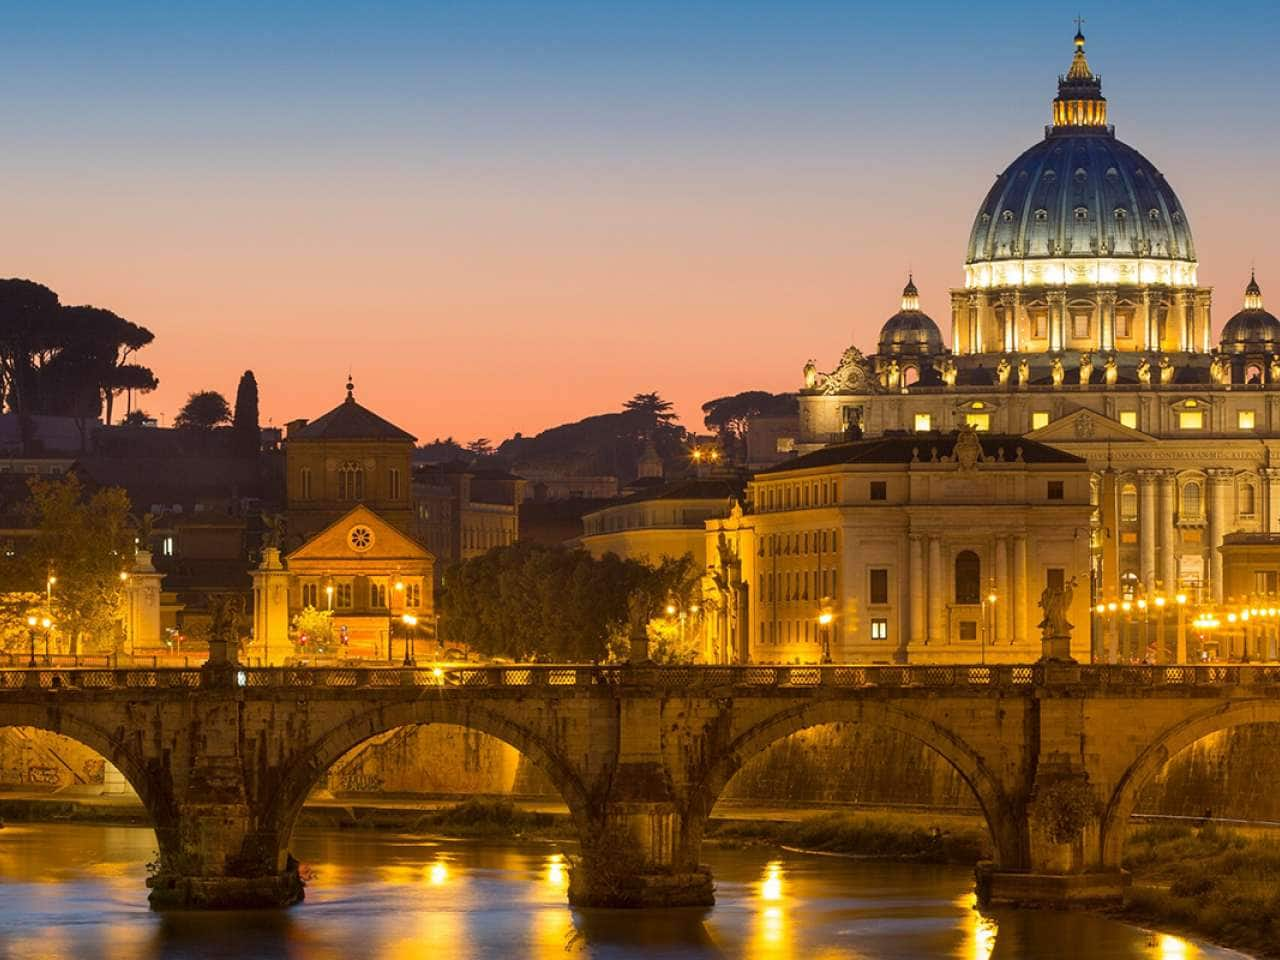 Twilight over River Tibor and the dome of San Pietro, Vatican, Rome, Lazio, Italy. Visit the Rome forum on a Holland America Line European cruise.